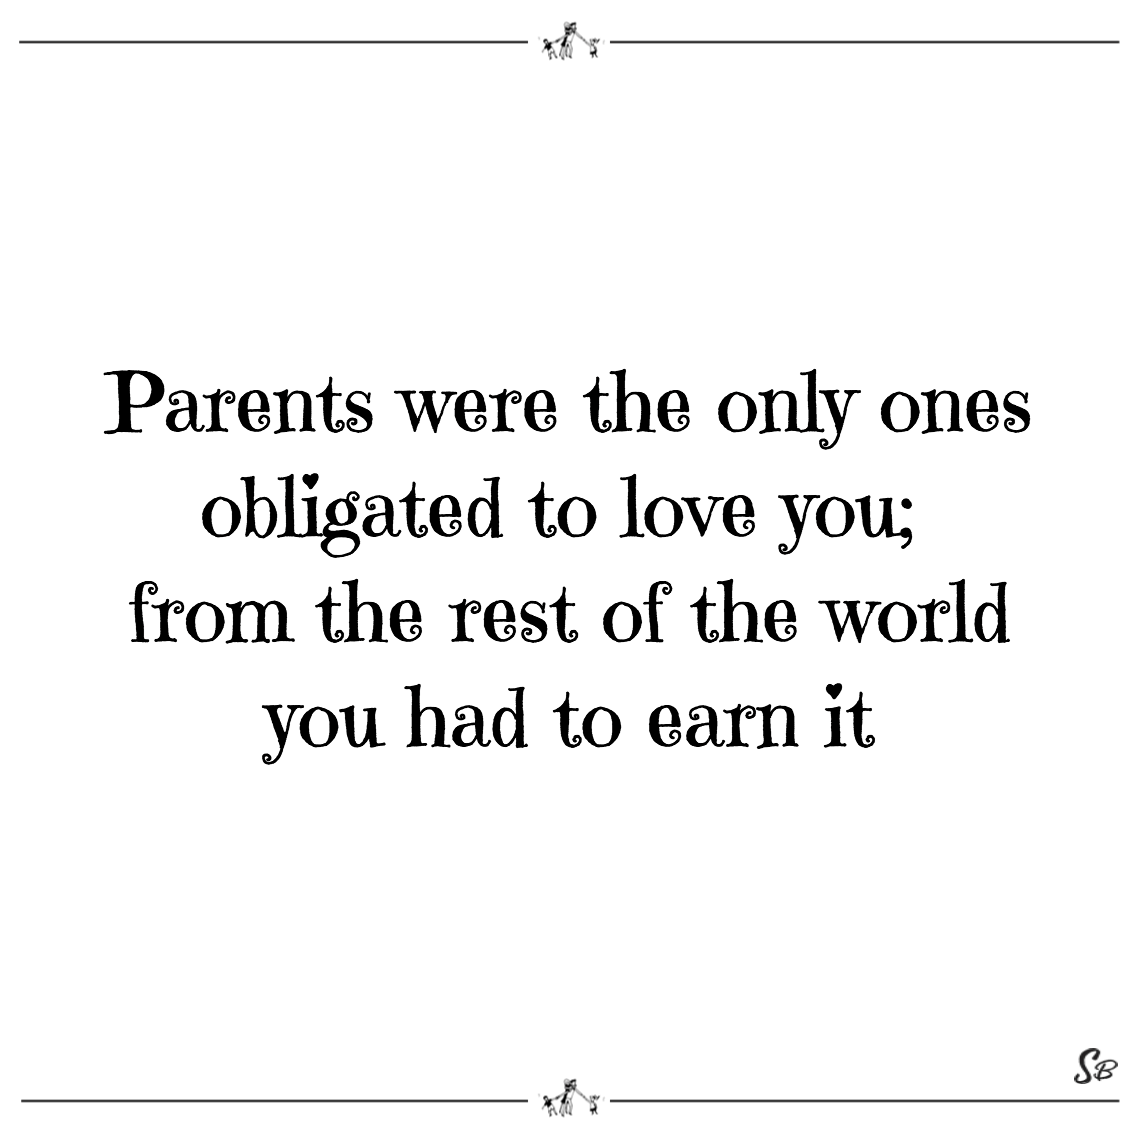 Parents were the only ones obligated to love you; from the rest of the world you had to earn it